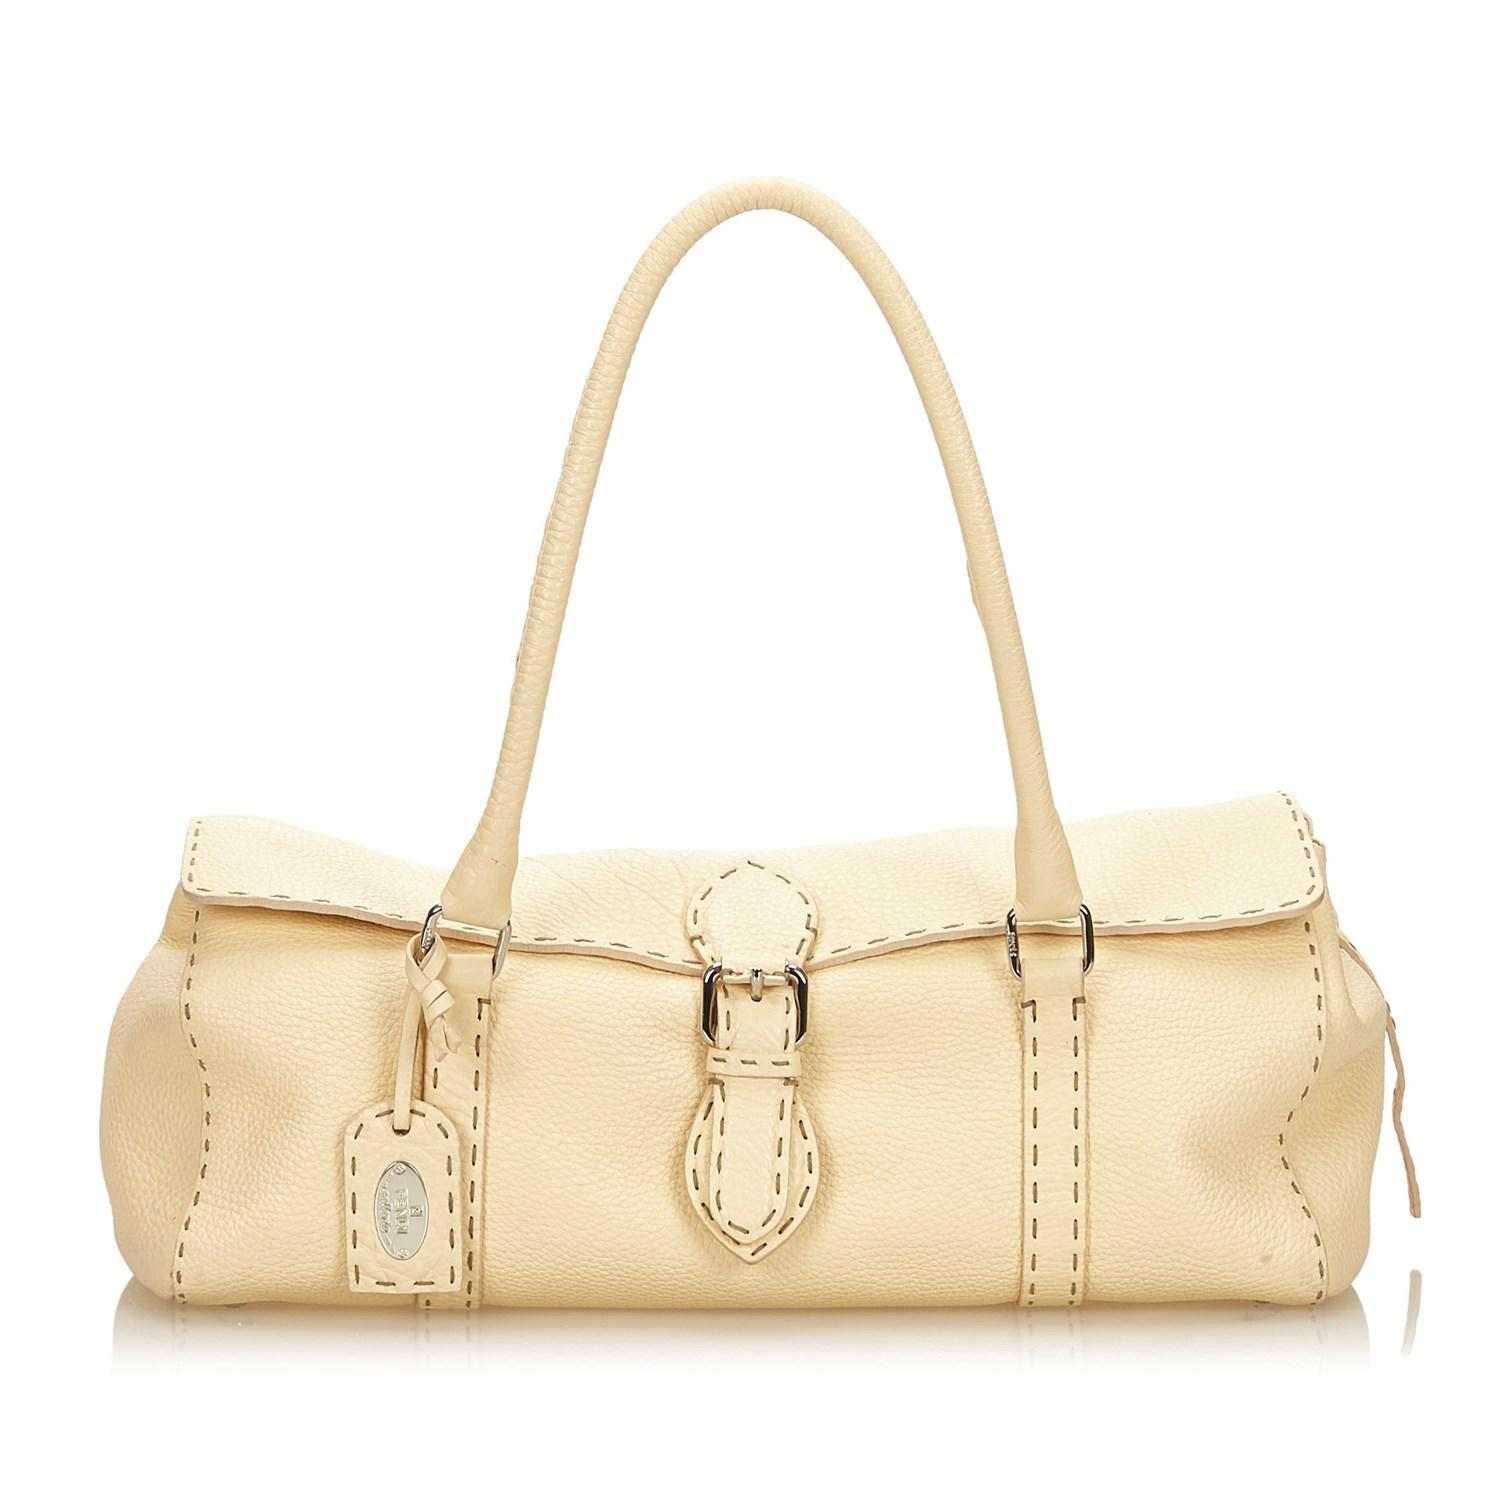 ee9508d8bb85 Lyst - Fendi Selleria Leather Handbag in Natural